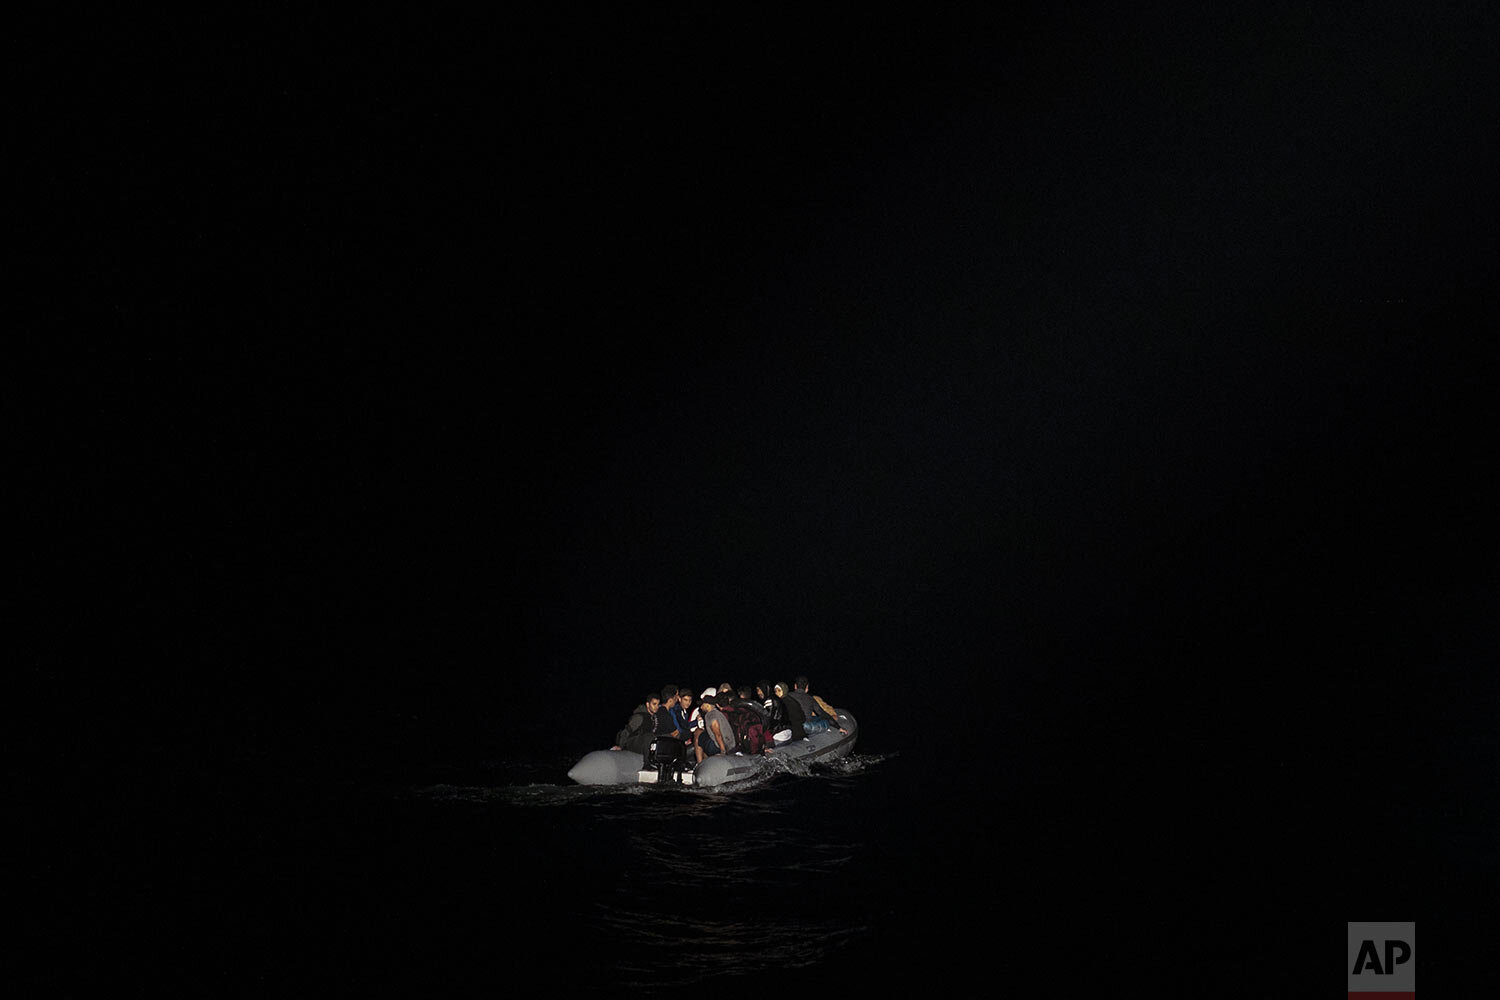 Refugees and migrants in a dinghy are lit by a a Greek coast guard patrol boat's spotlight during a rescue operation near the eastern Aegean Sea island of Samos, early Thursday, Sept. 26, 2019. (AP Photo/Petros Giannakouris)